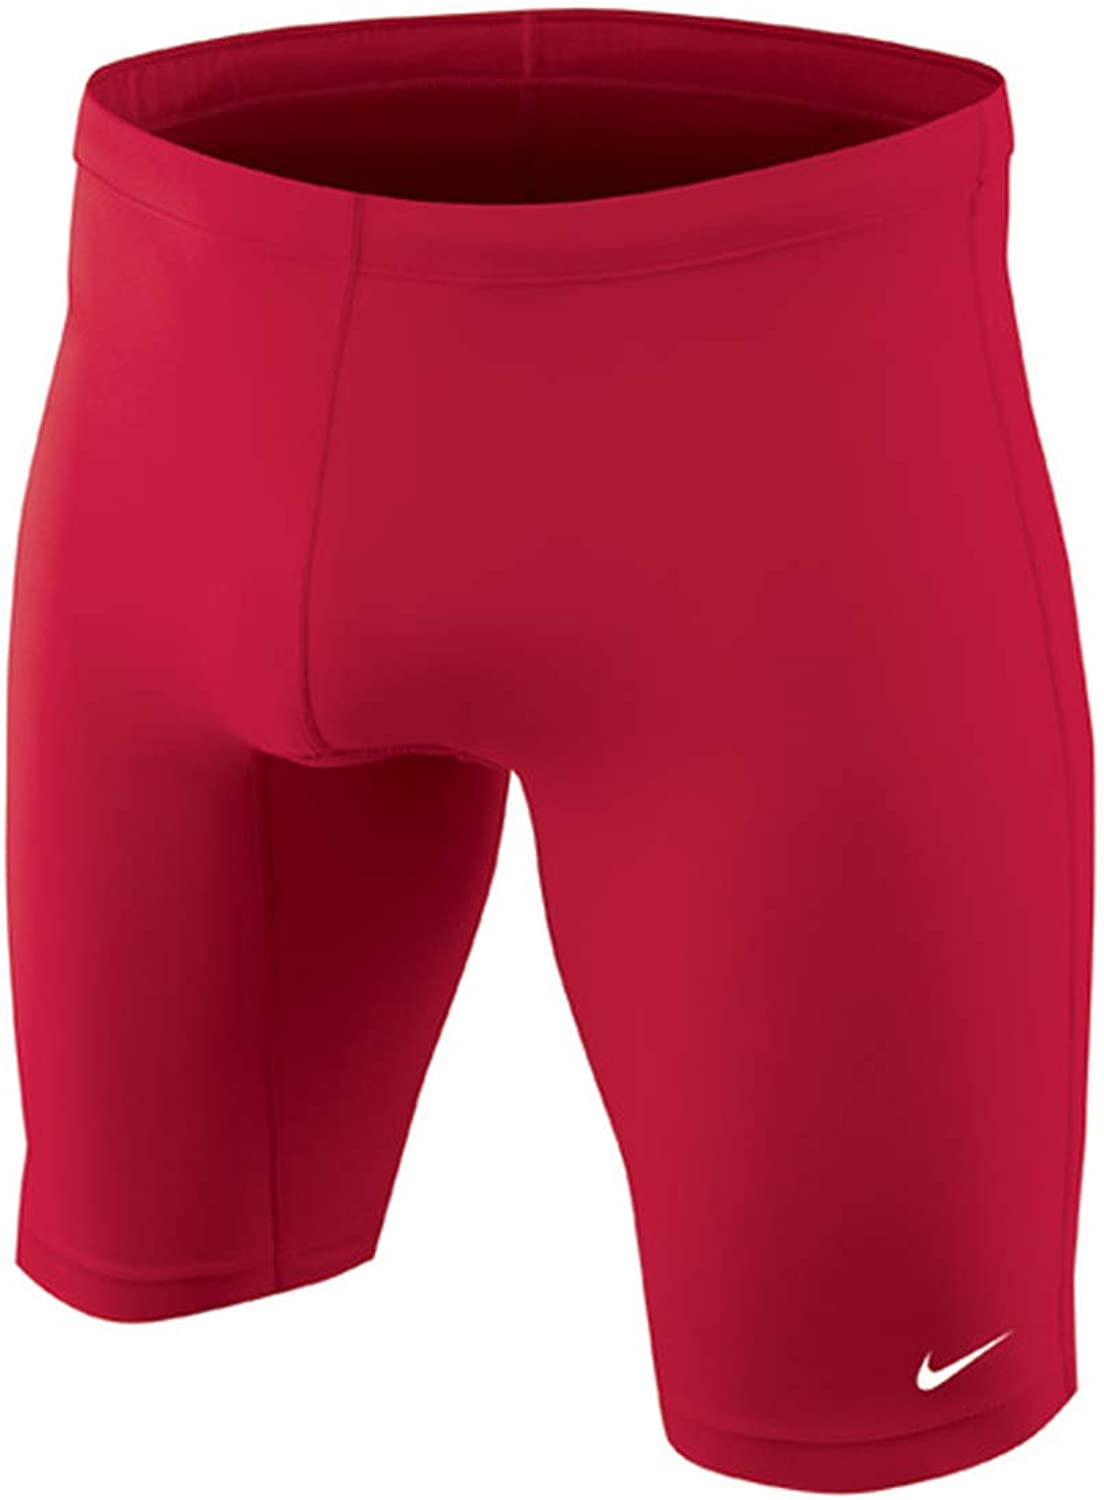 NikeTESS0051Adult Jammer640 Varsity Red Red Size-20